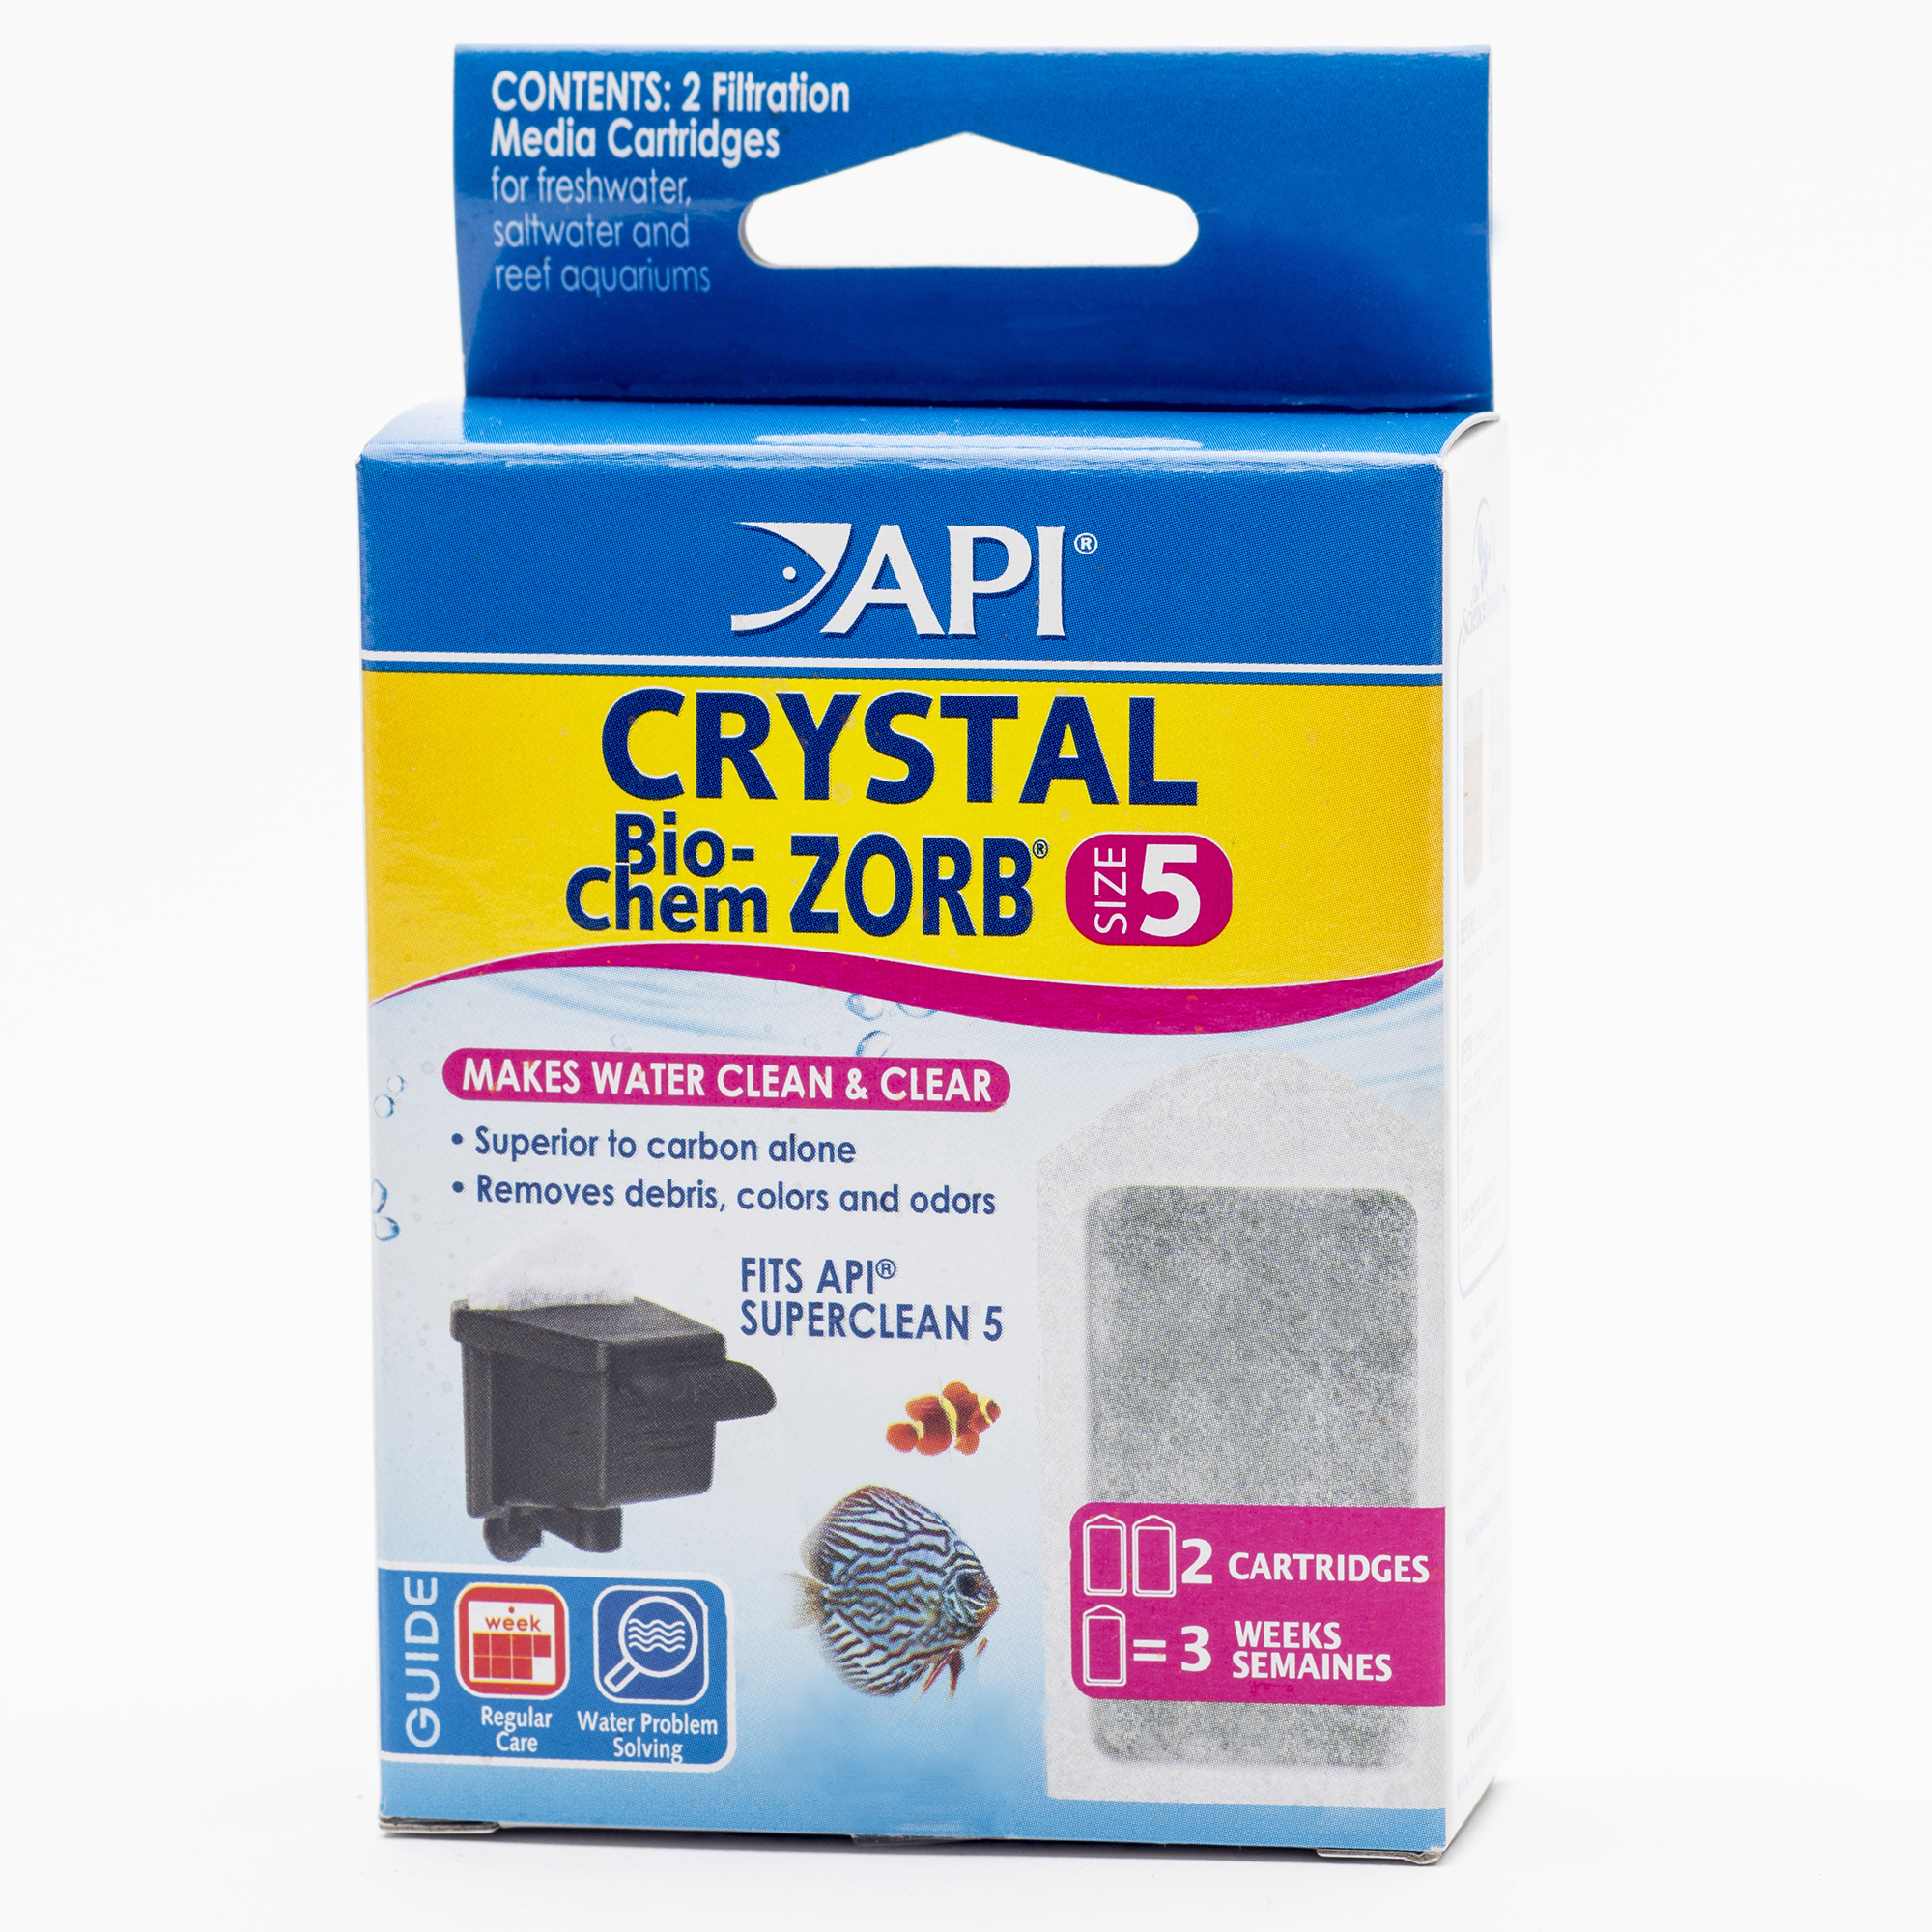 CRYSTAL BIO-CHEM ZORB™